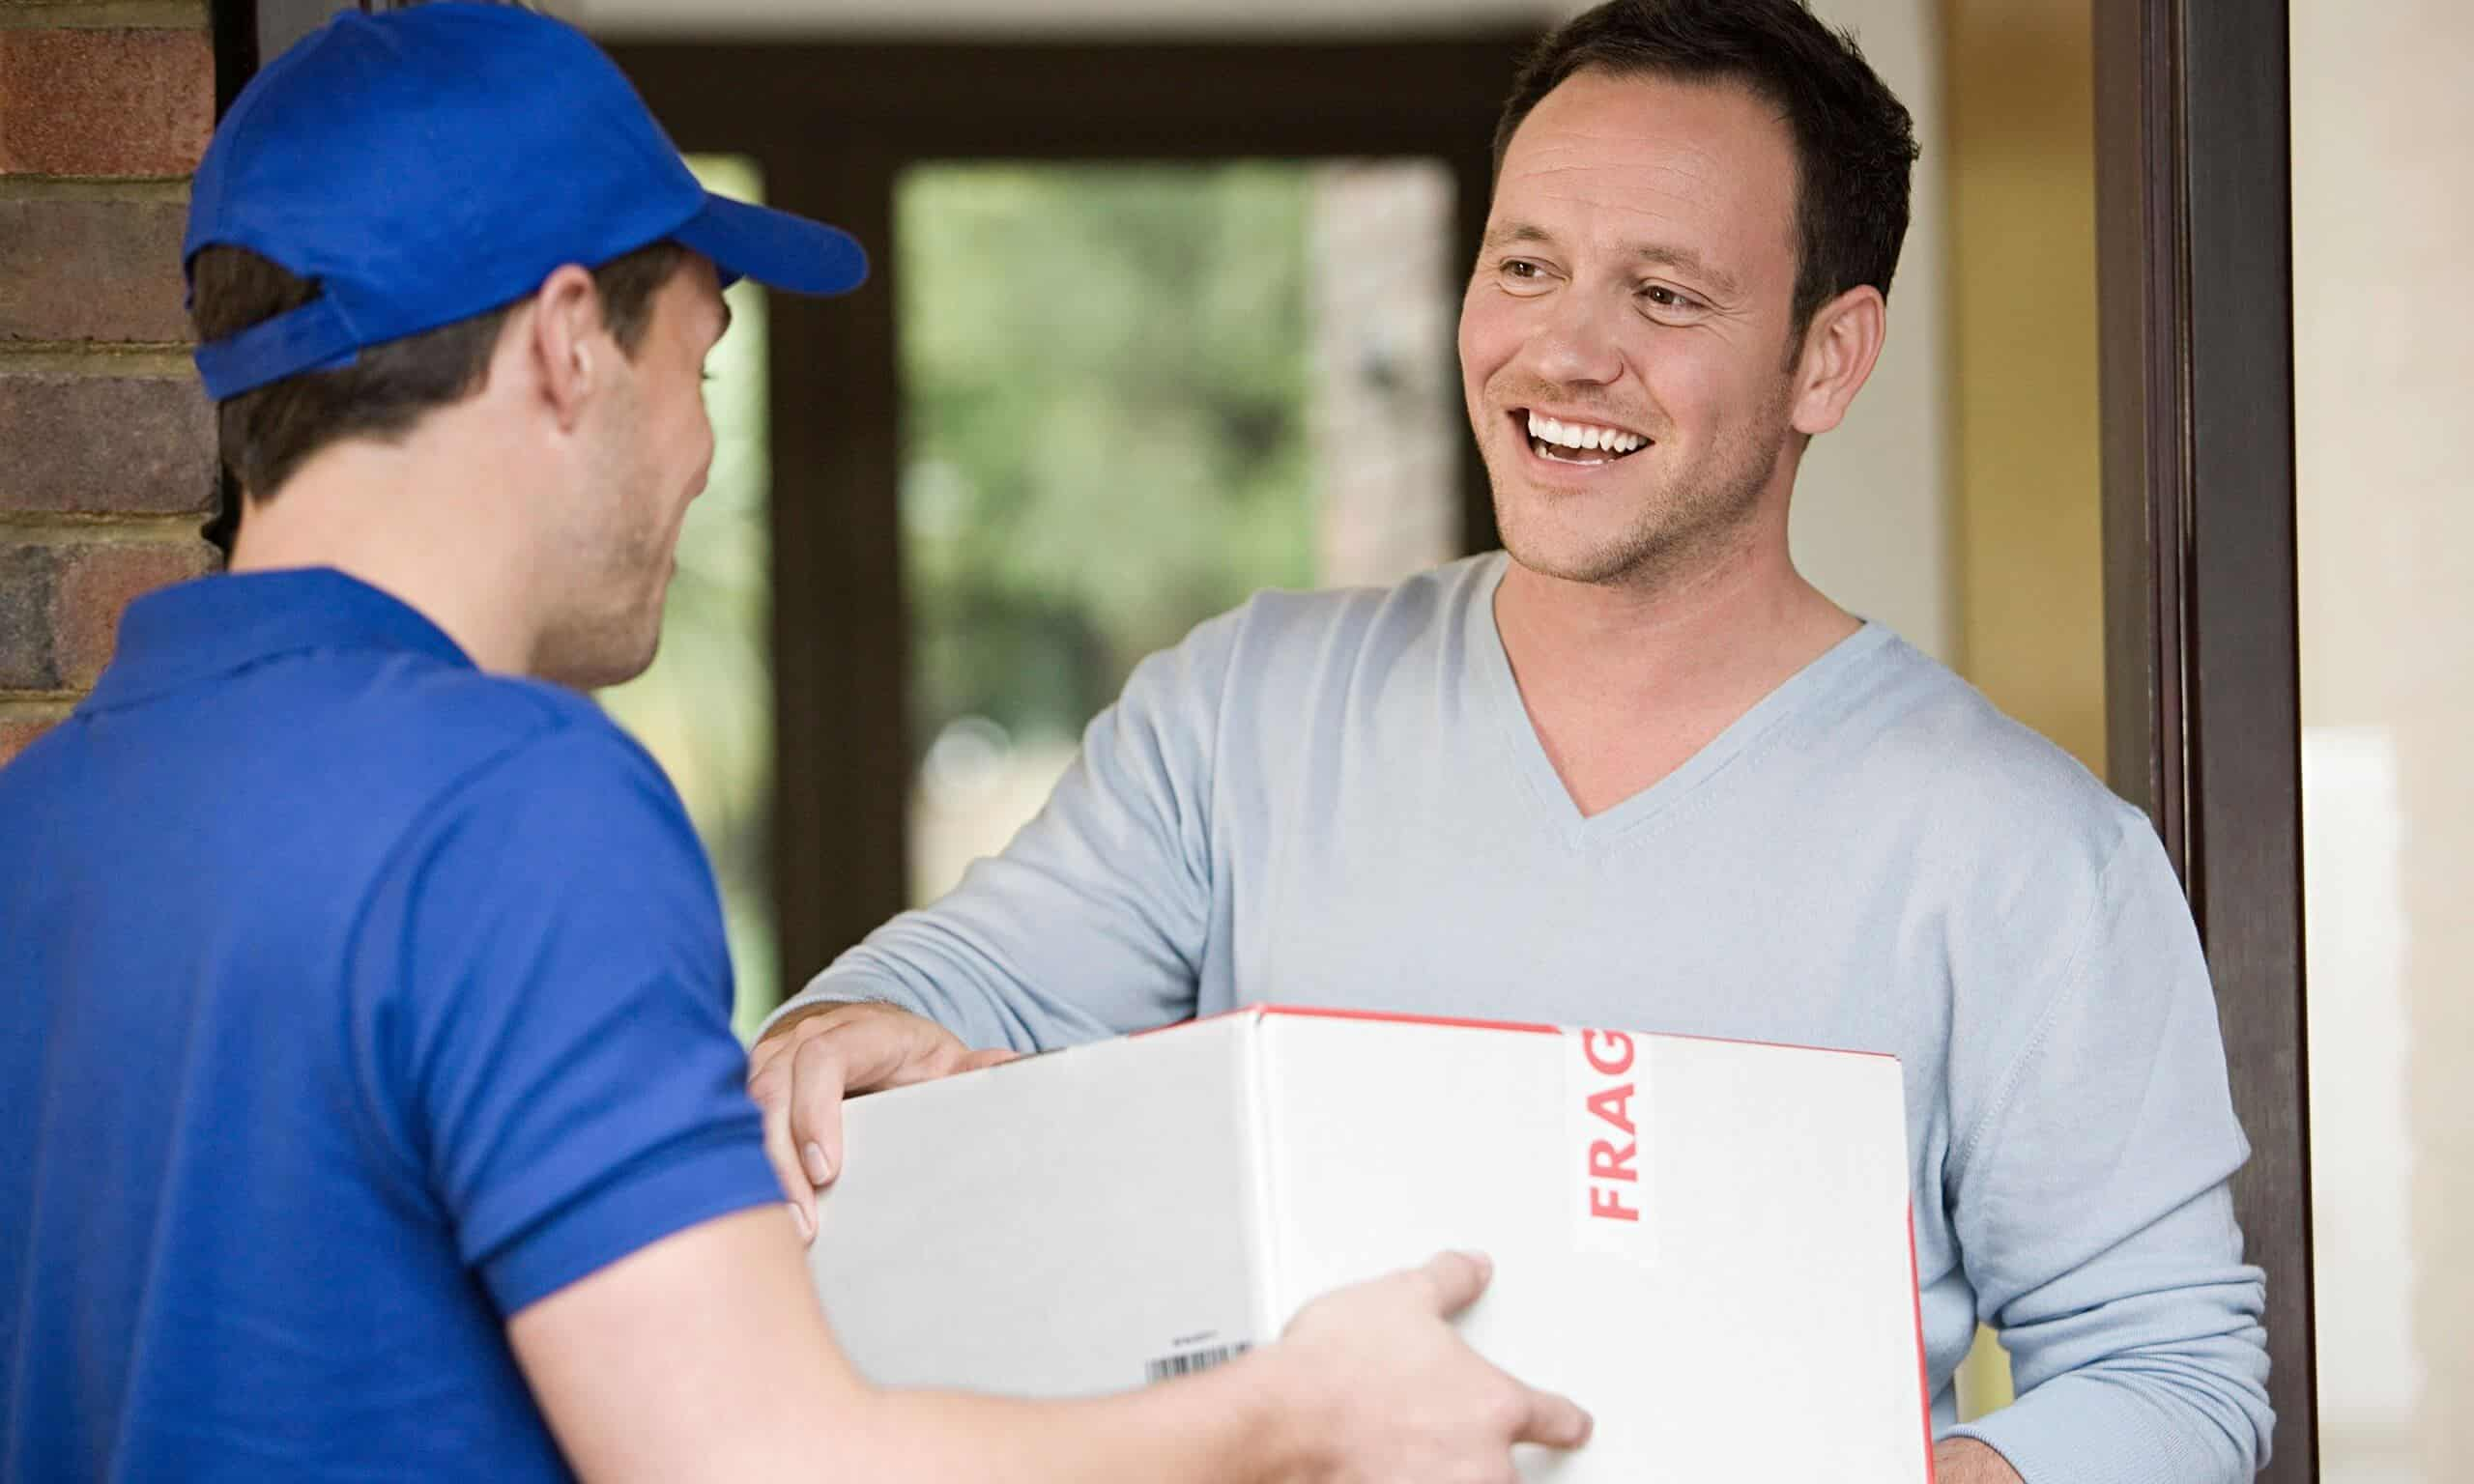 Cheap courier services are a real necessity